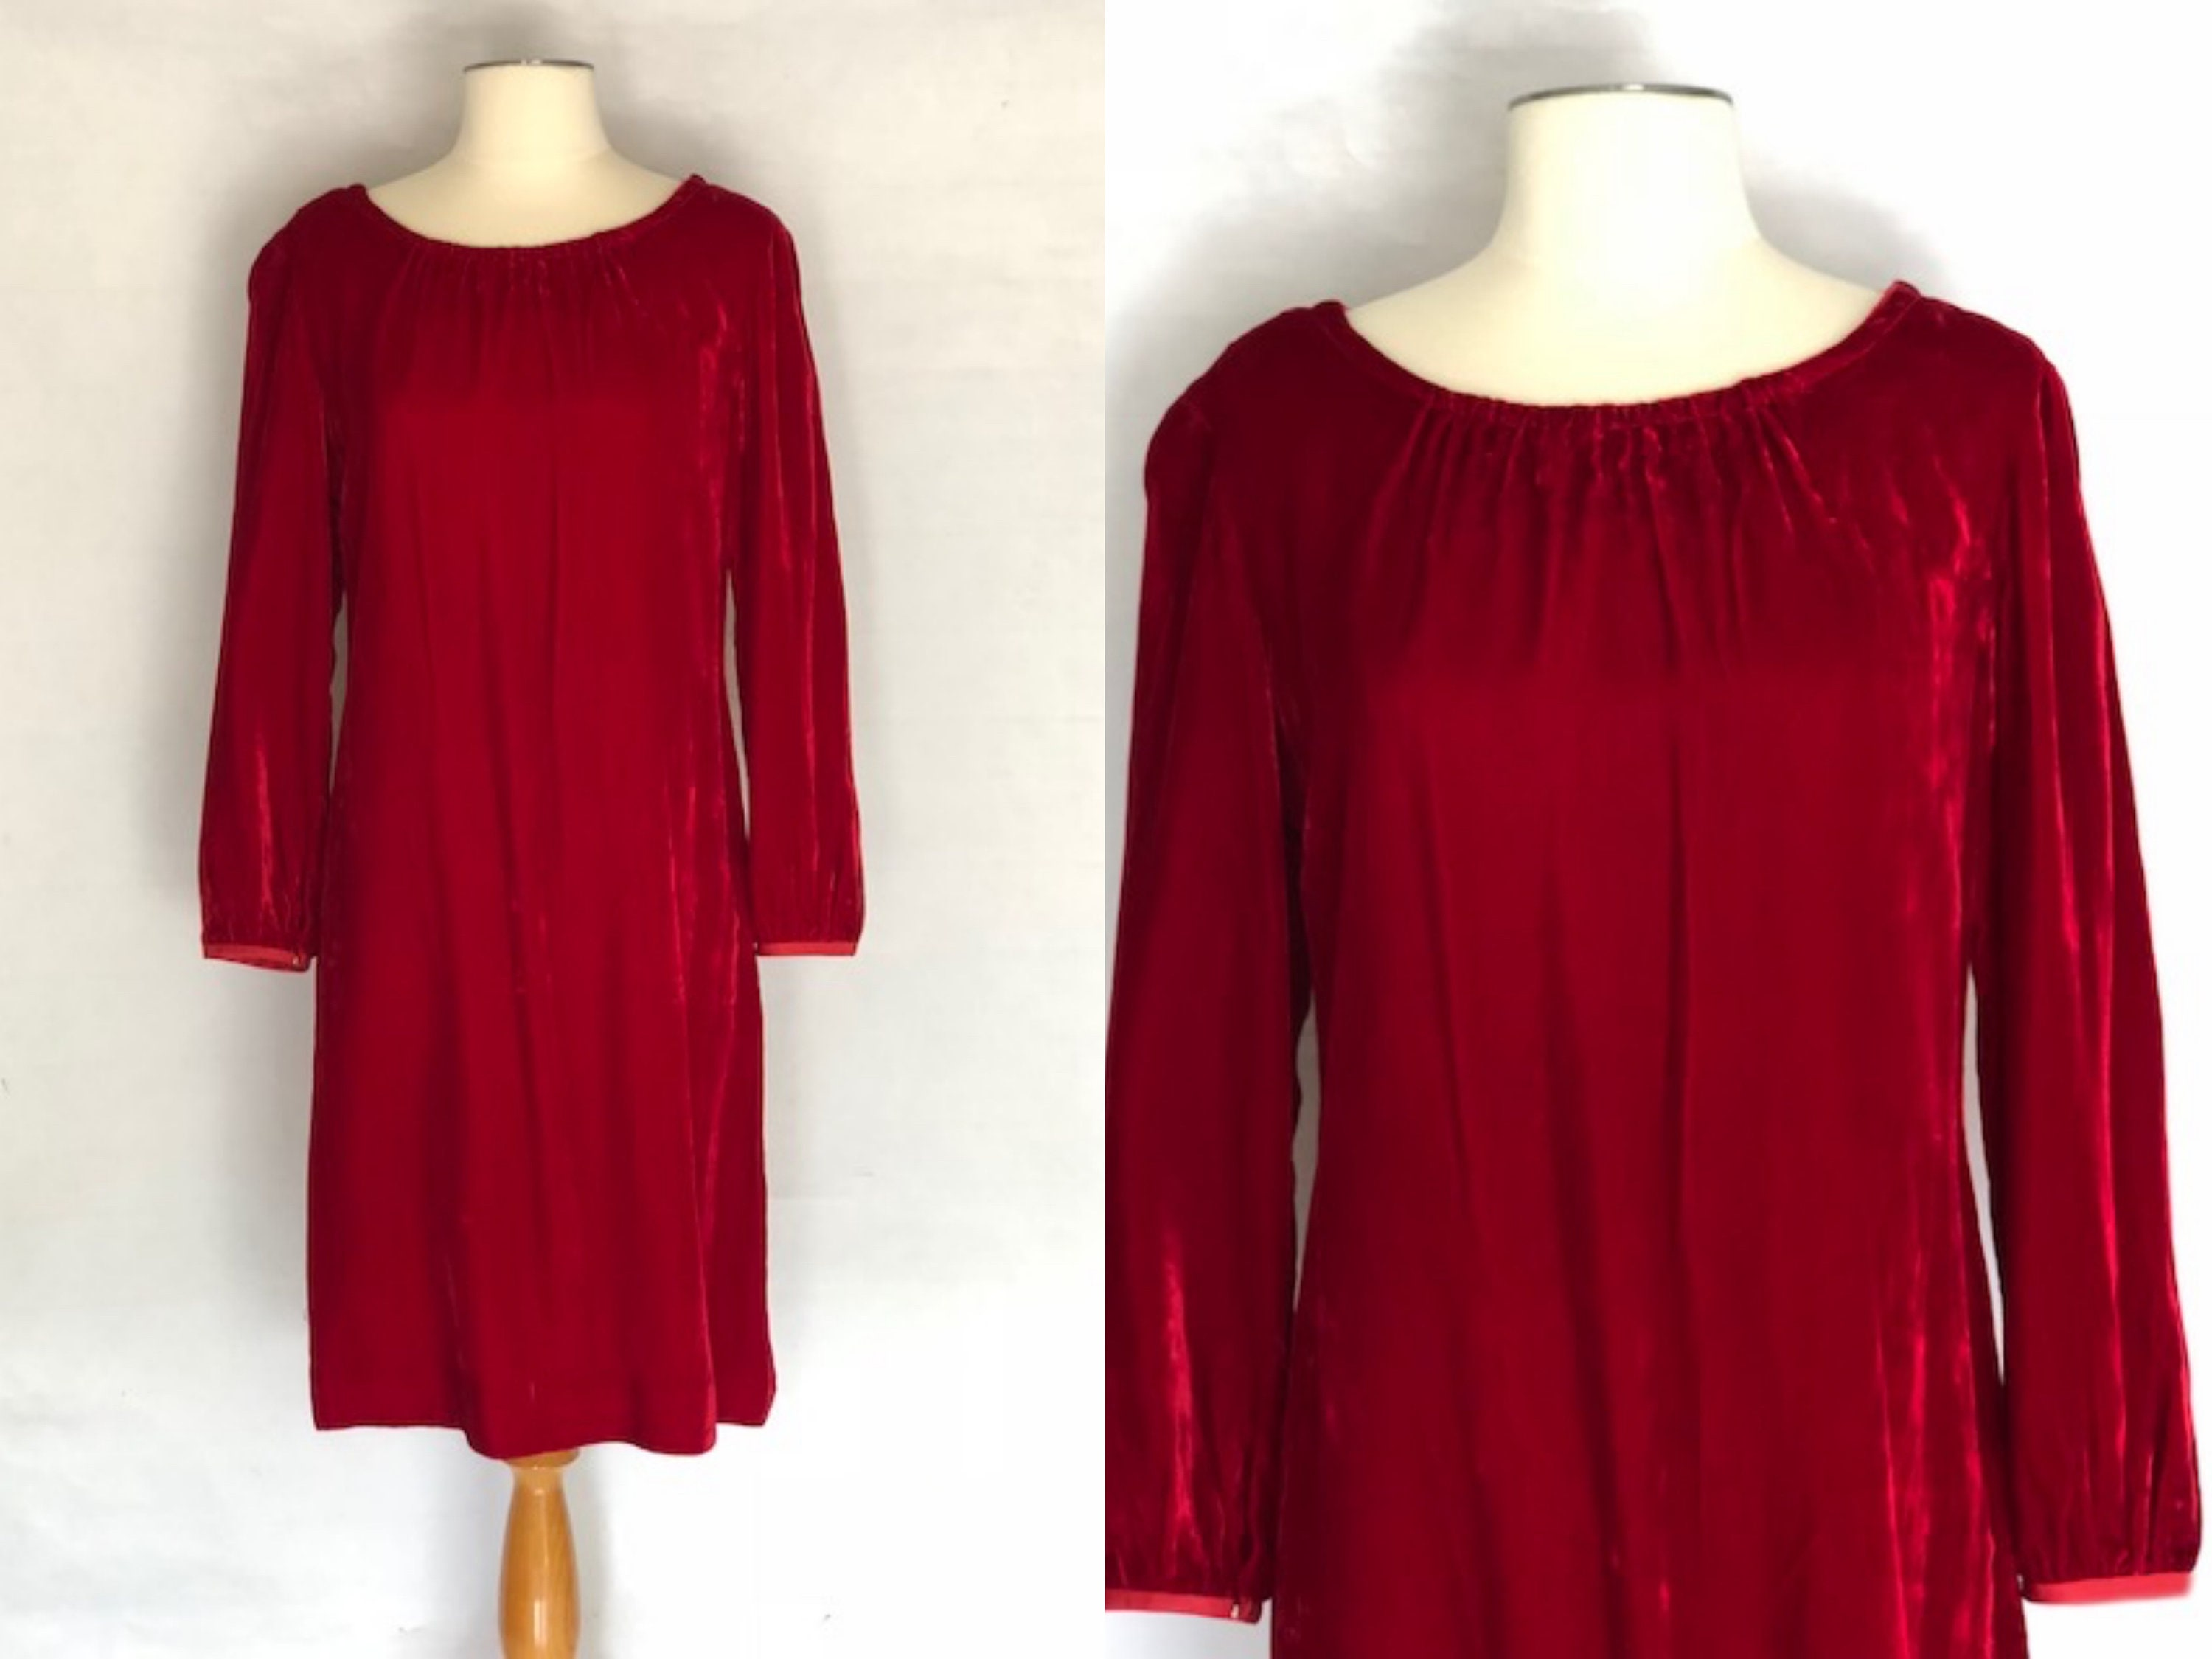 db2899f75e9 1950s red velvet dress 1950s shift dress vintage 50s red